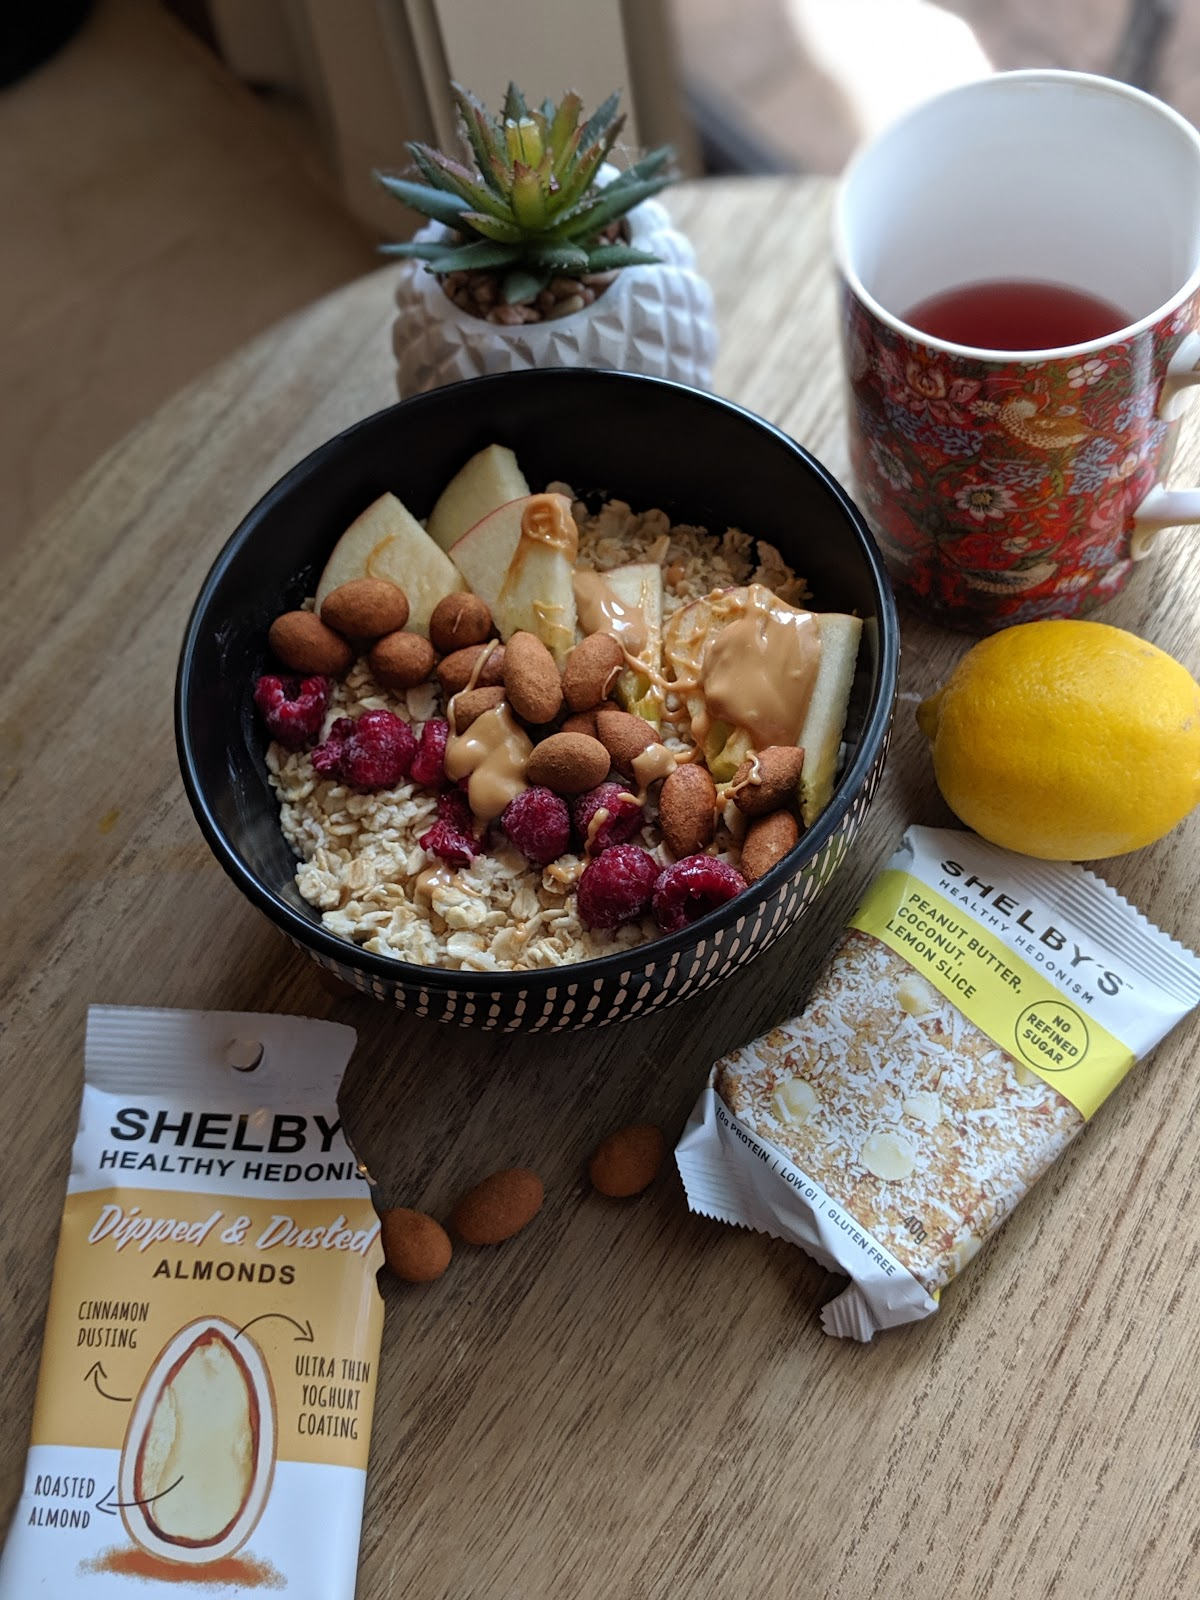 A bowl of oats topped with berries,apples and peanut butter, Shelby's Healthy Snacks dipped and dusted almonds. A cup of tea is beside the bowl.